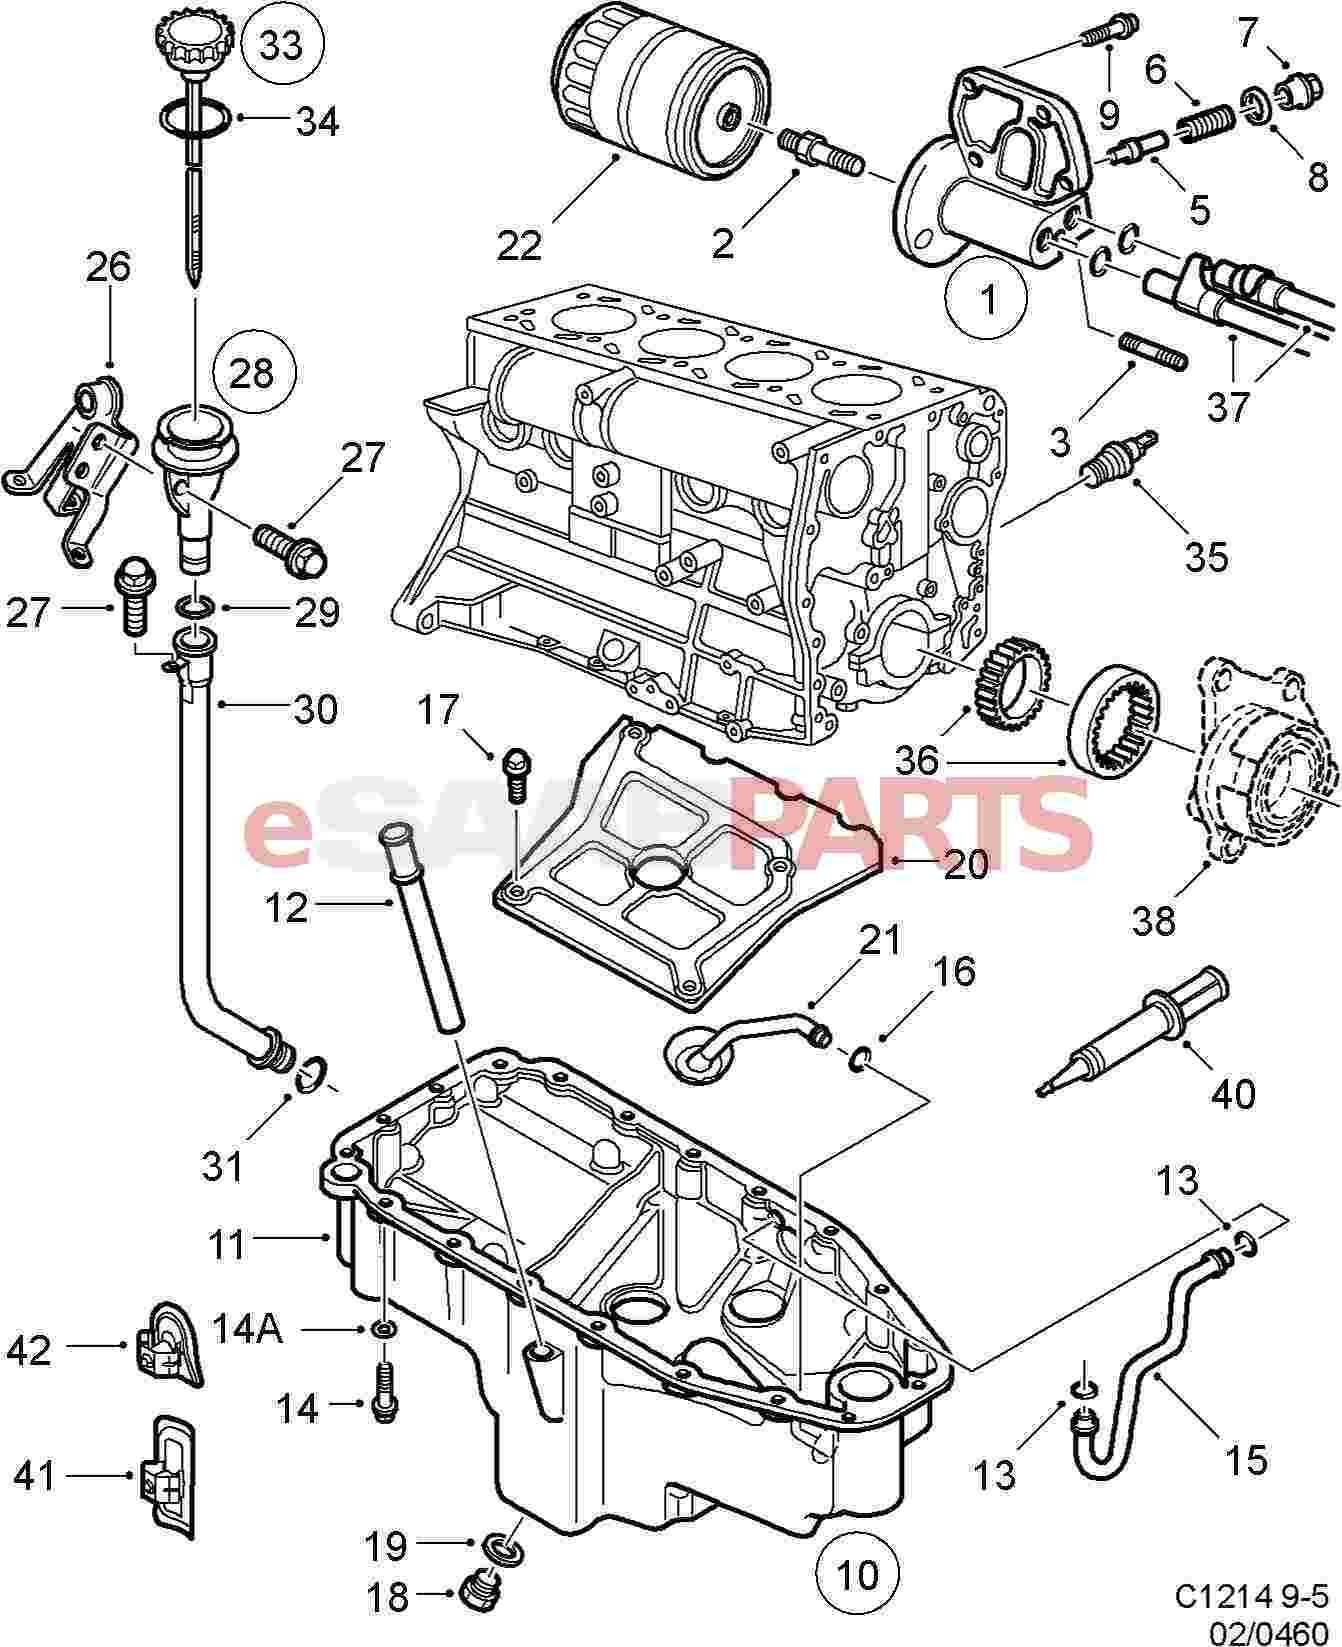 saab 95 engine diagram  u2022 wiring diagram for free